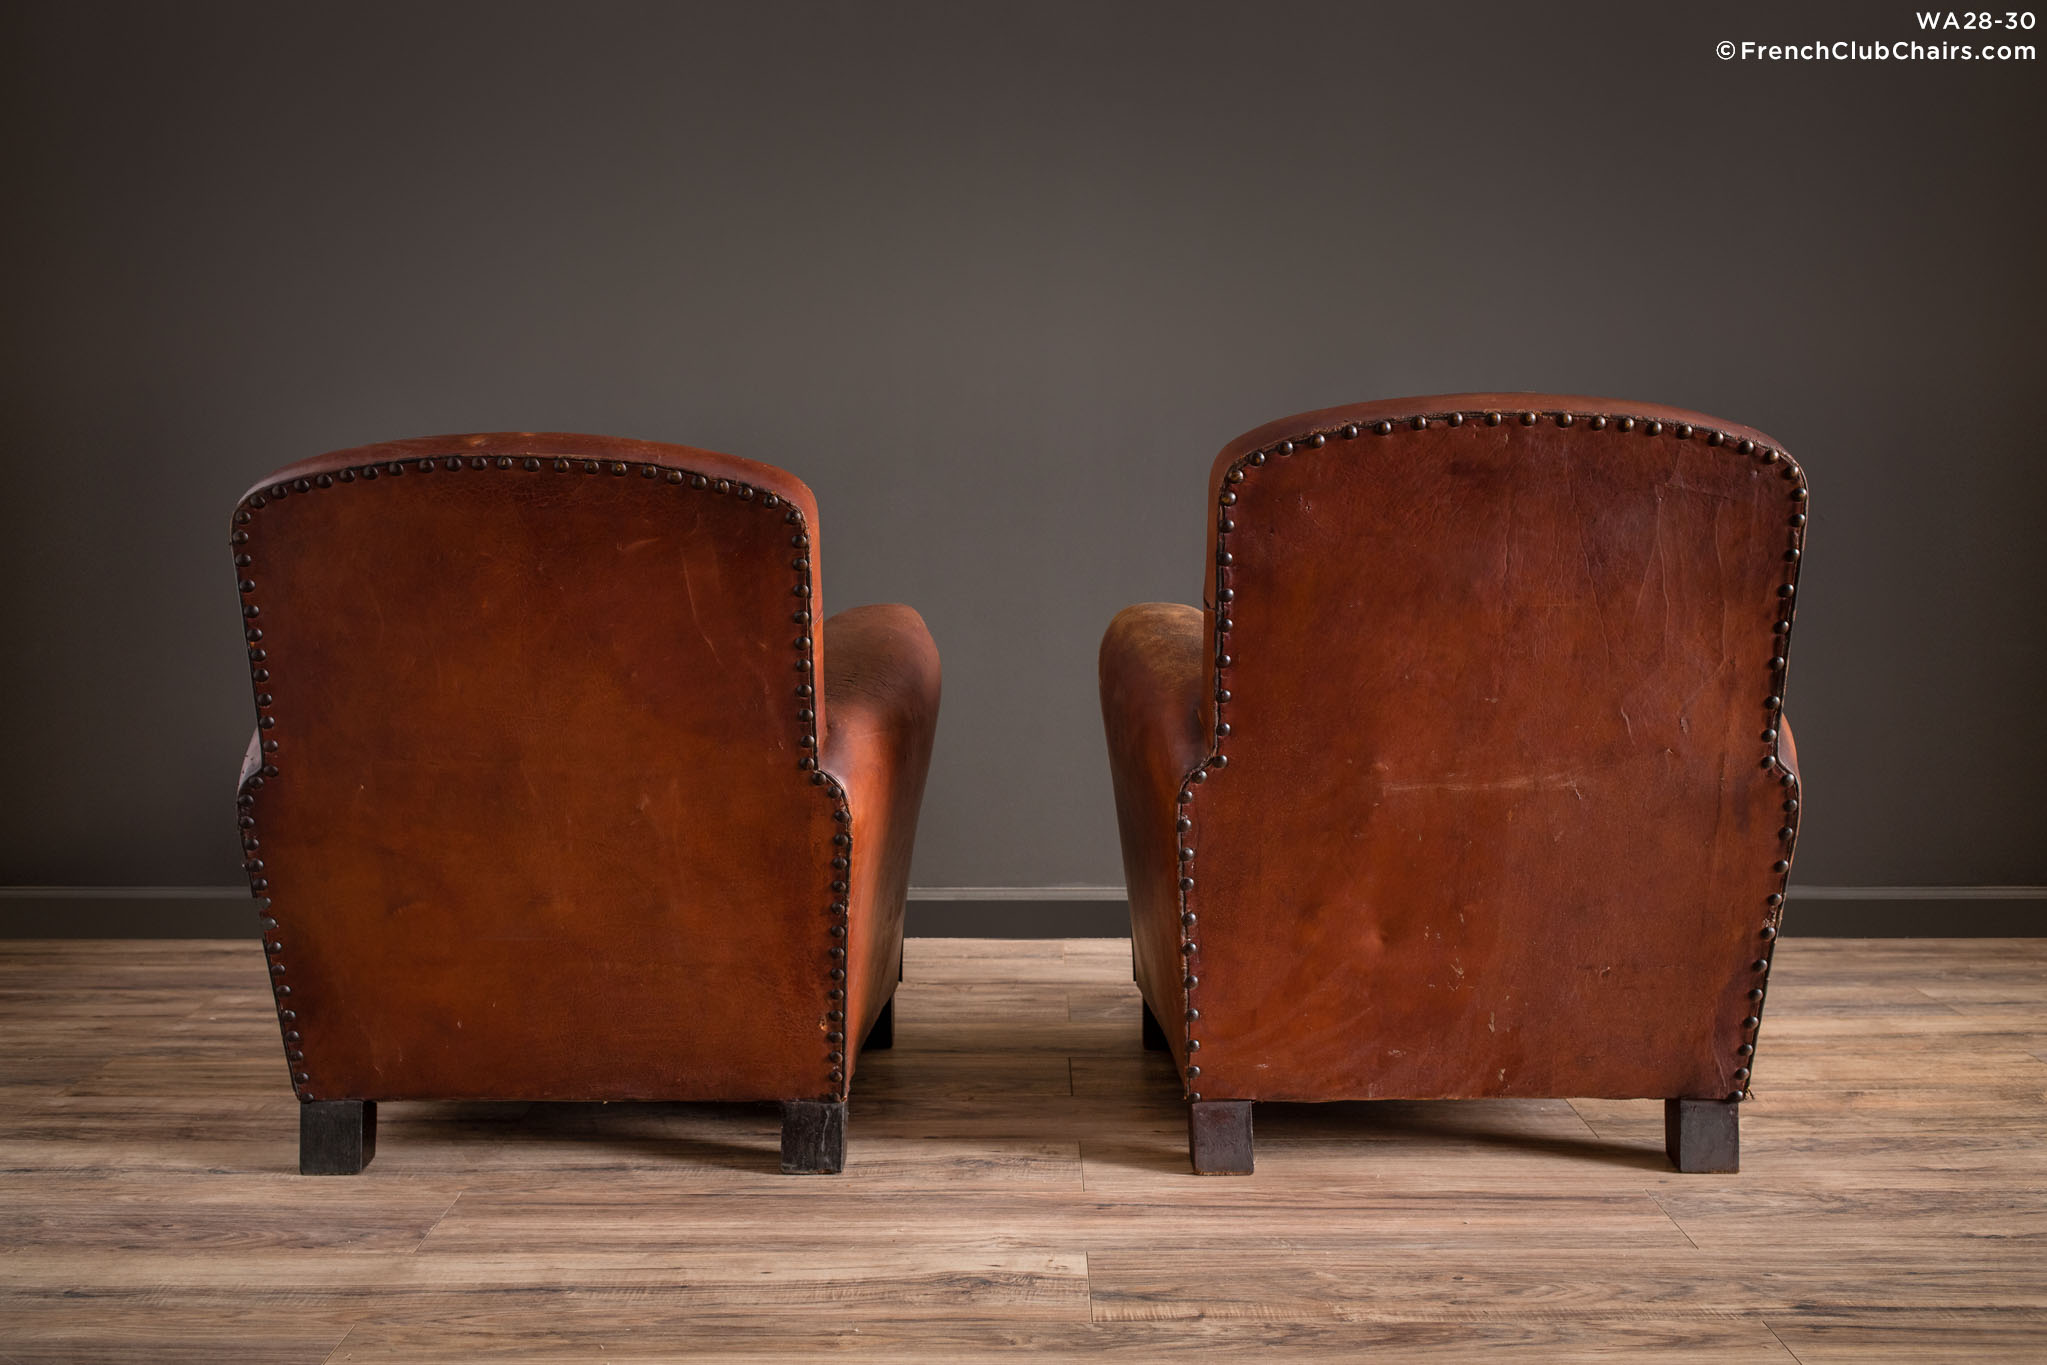 WA_28-30_Dark_Aubain_Library_Pair_R_2BK1-williams-antiks-leather-french-club-chair-wa_fcccom